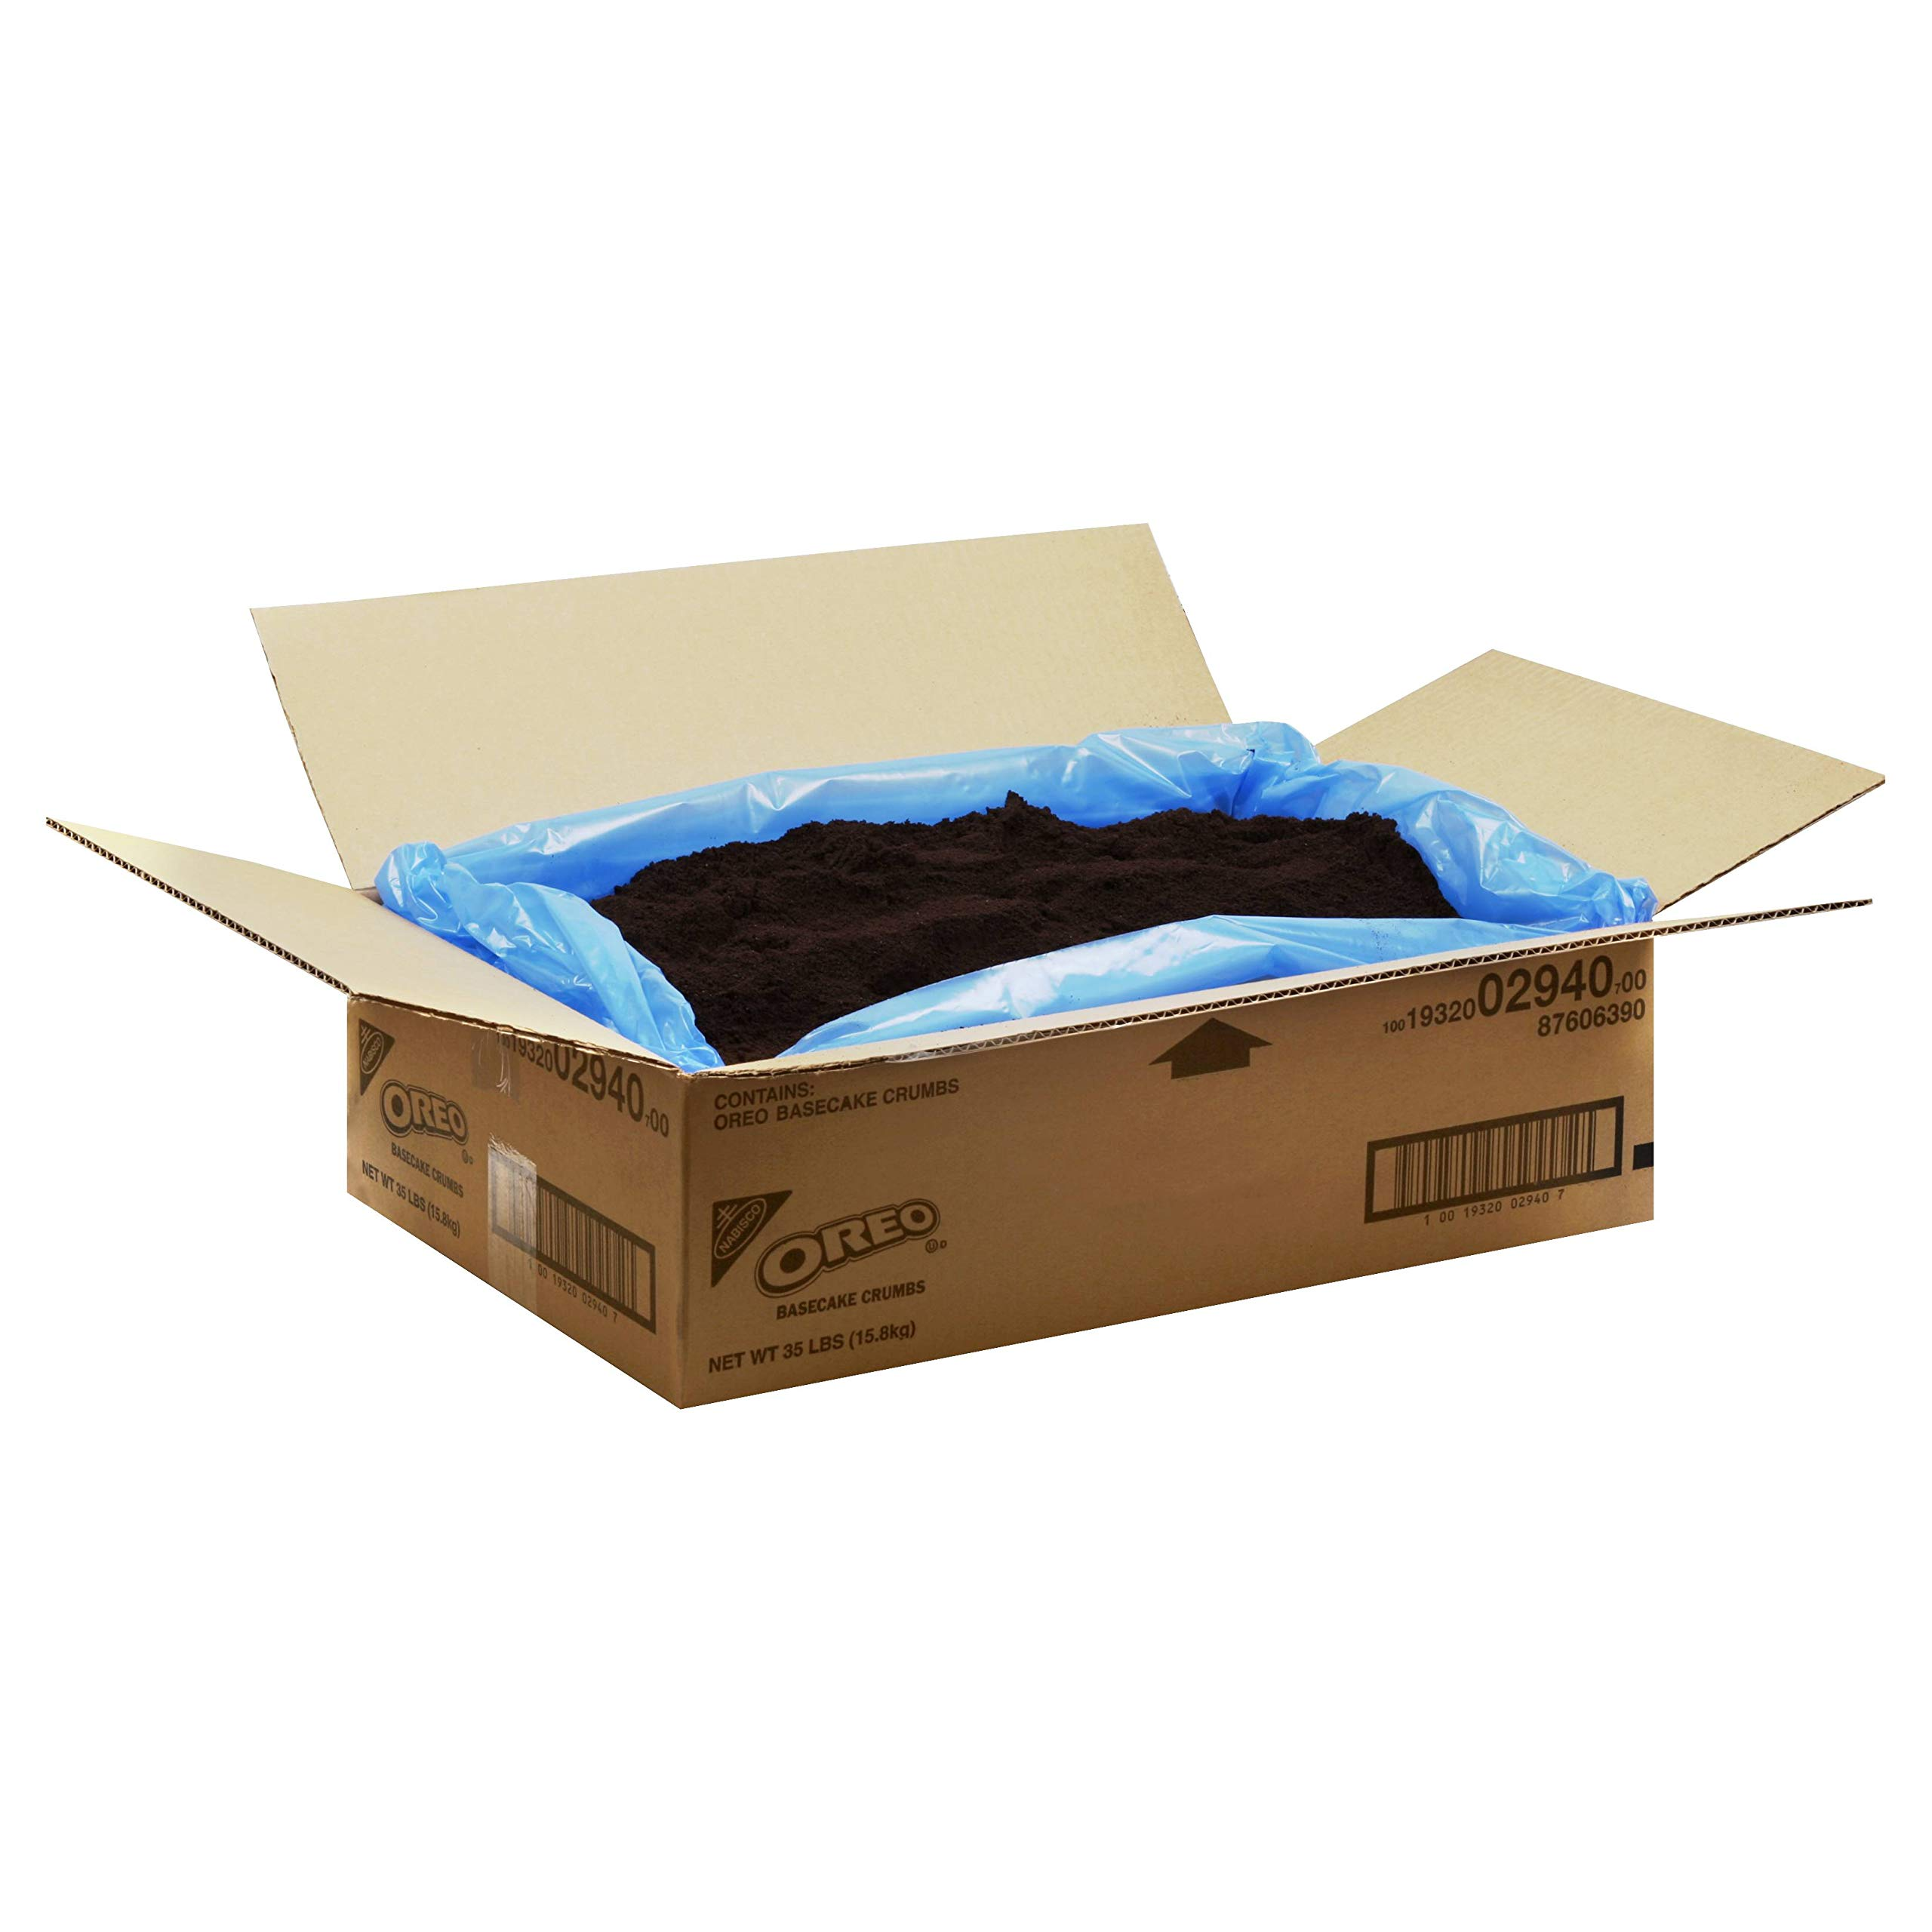 Oreo Cake Base Cookie Crumbs 35 Pound by Nabisco (Image #1)